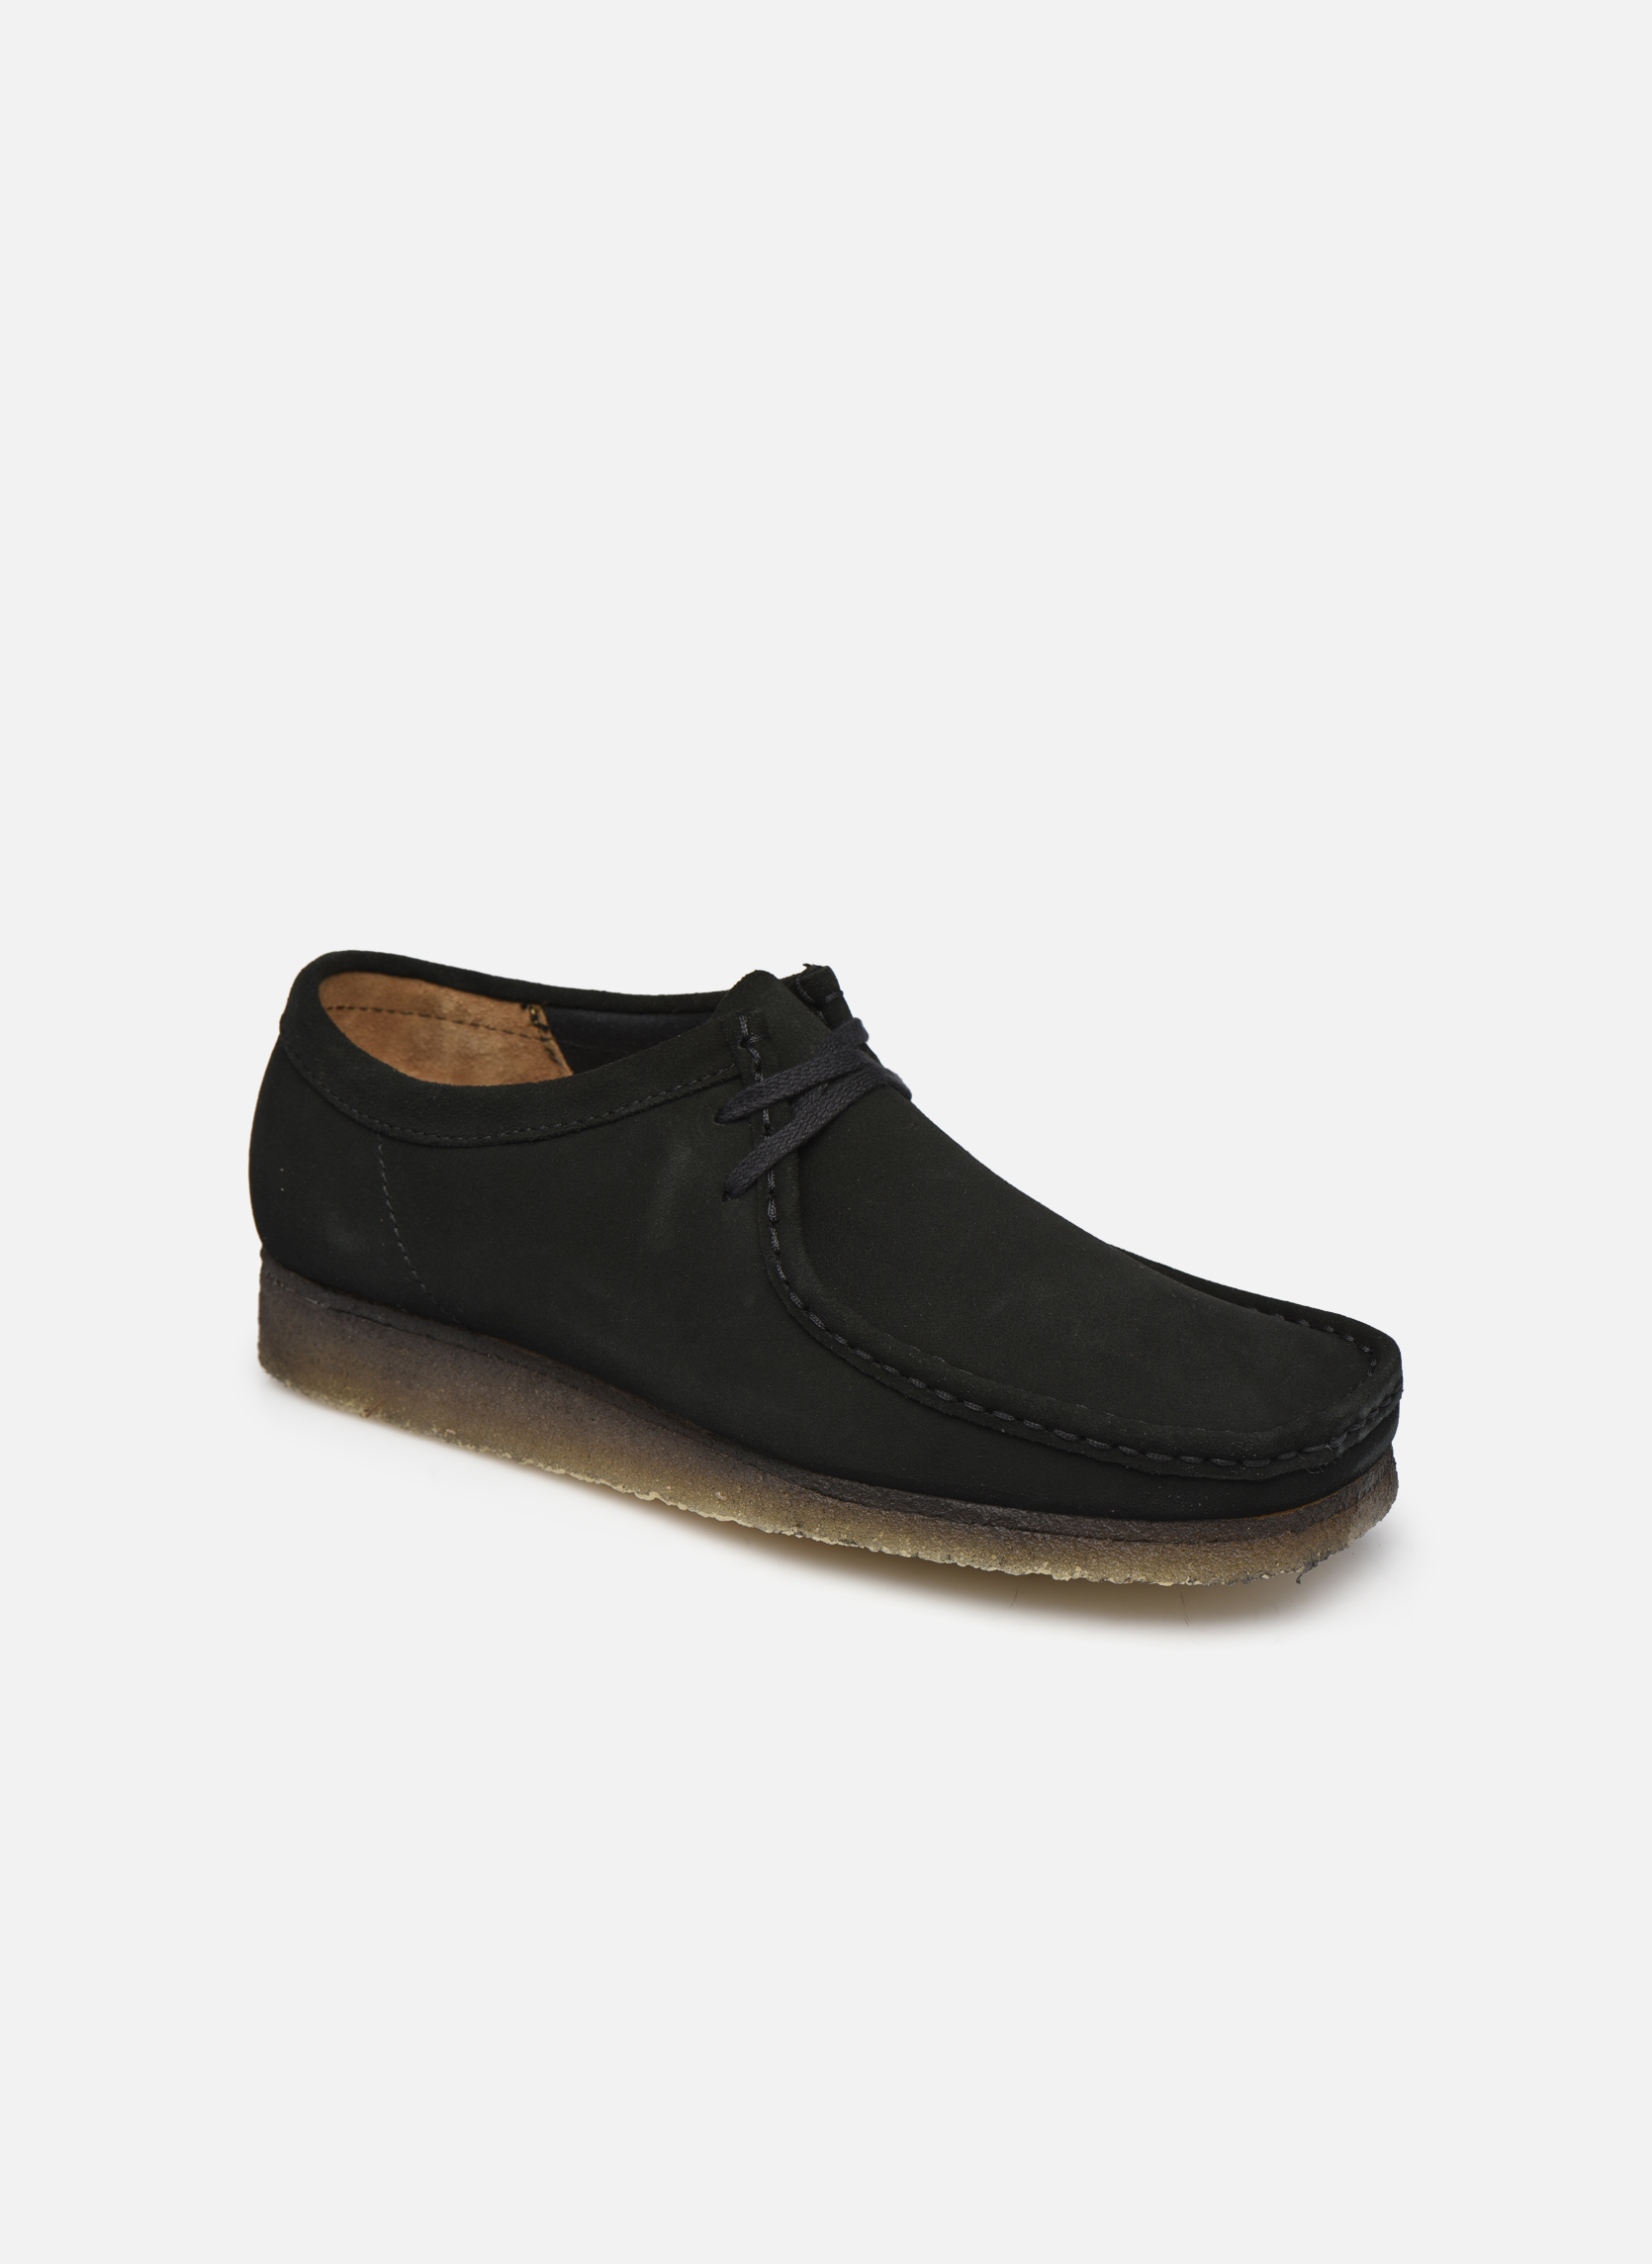 Clarks Originals Wallabee M